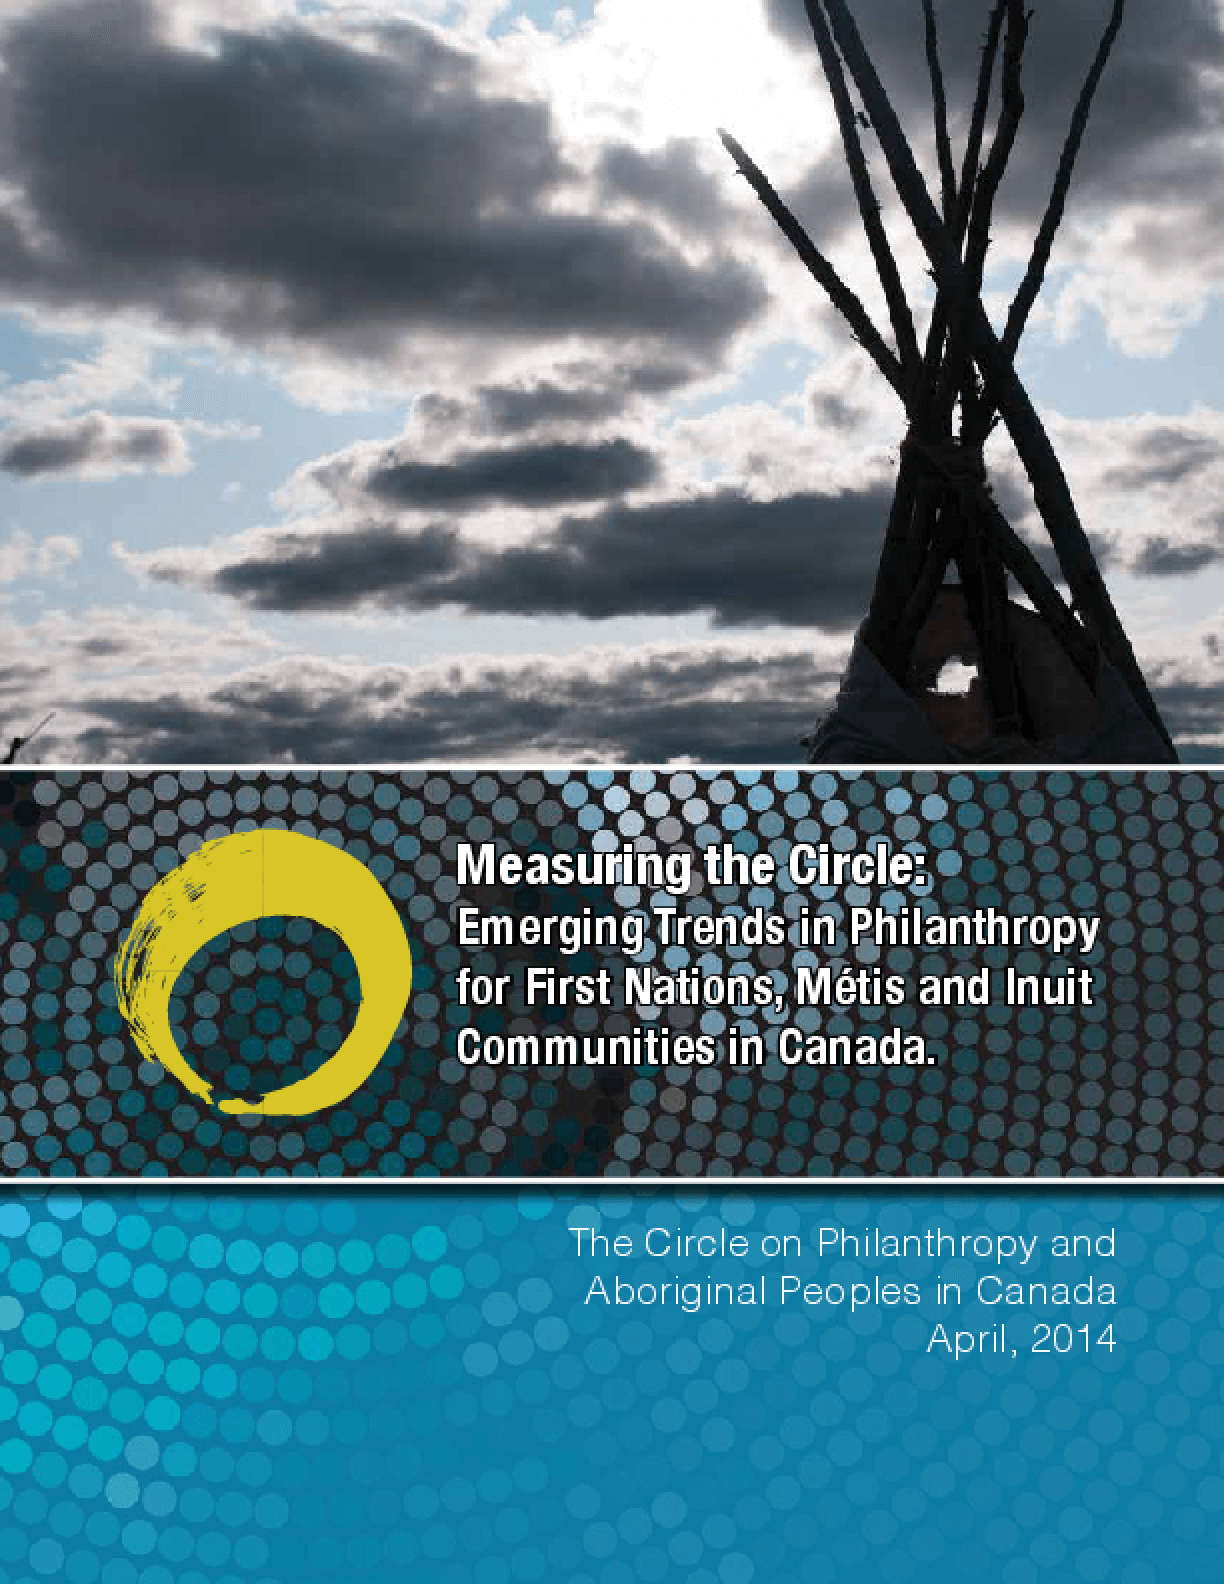 Measuring the Circle: Emerging Trends in Philanthropy for First Nations